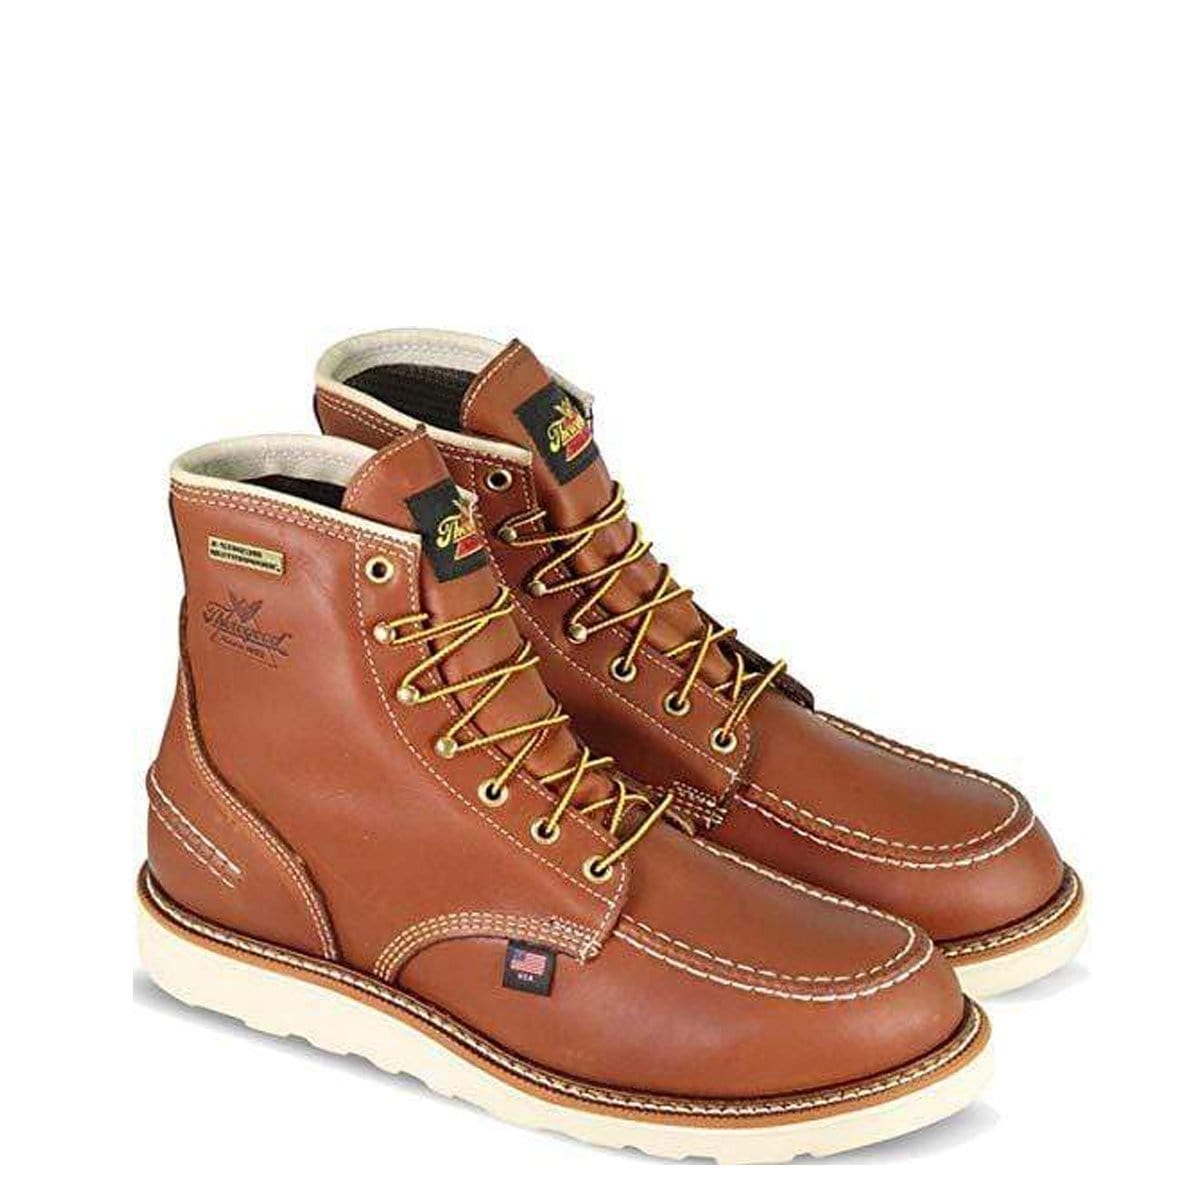 Thorogood 1957 Series Men's 6in Moc Toe, MAXwear Wedge Waterproof Non-Safety Toe Boot 814-4600